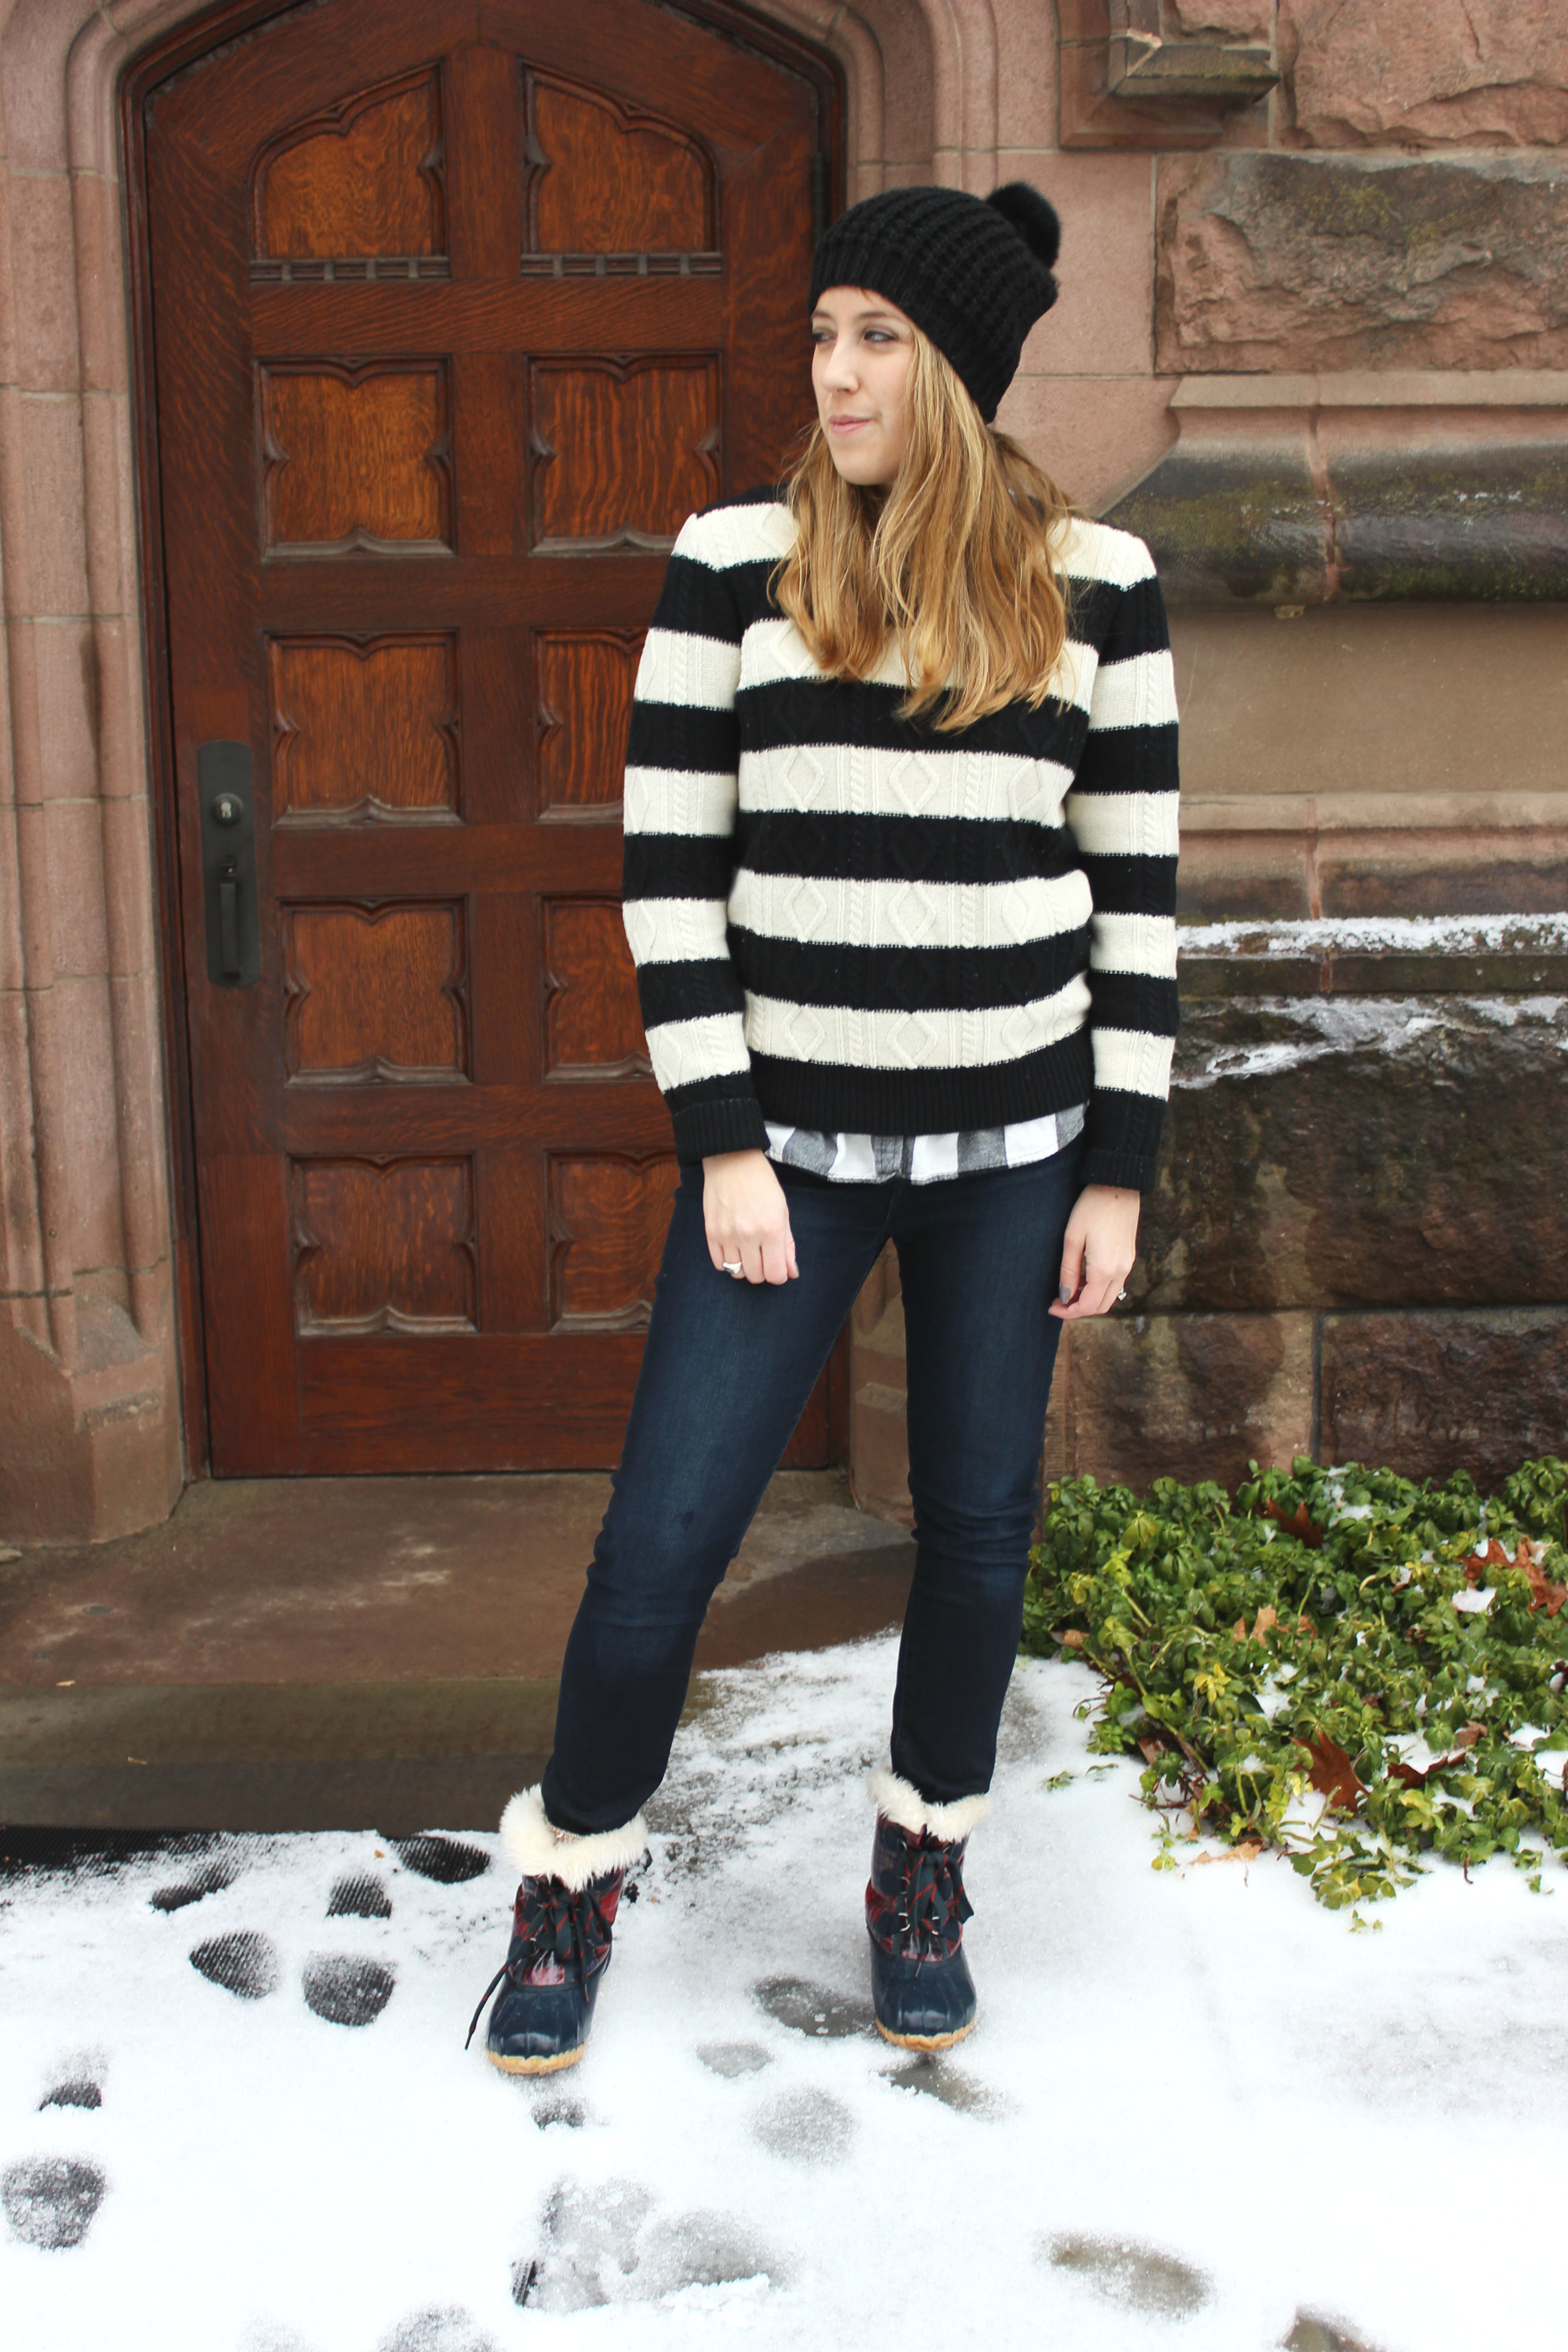 Wearing: How to Do A Layered Sweater